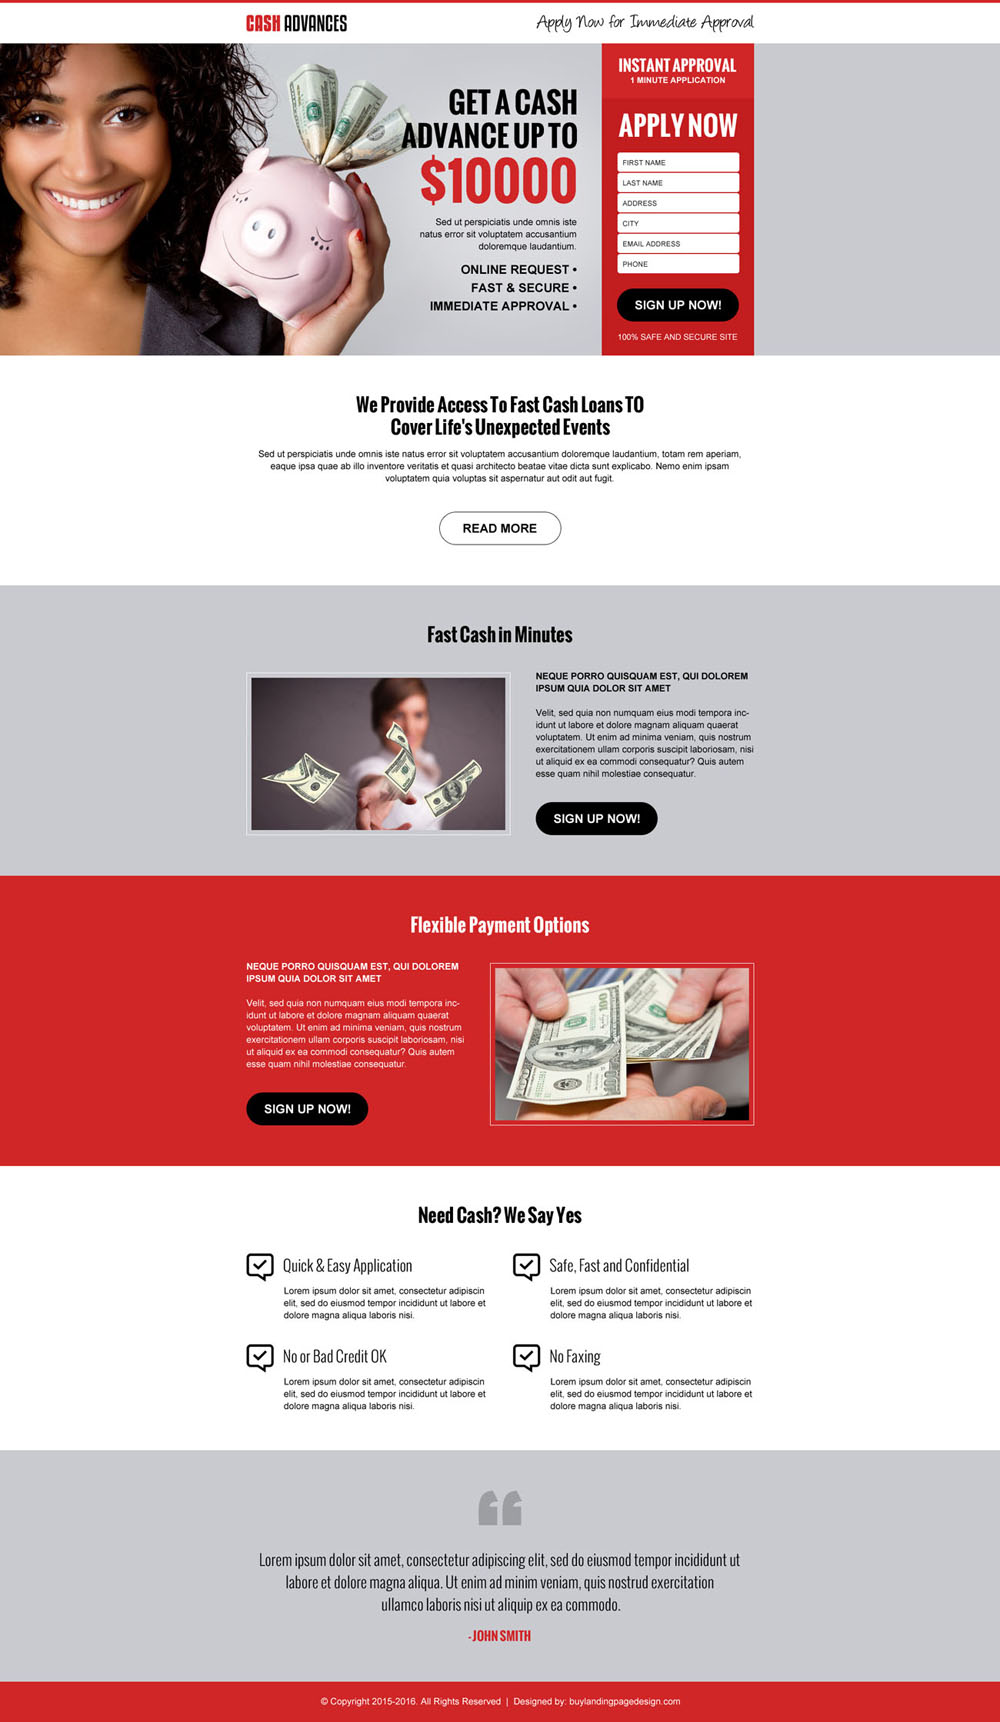 cash-loan-in-advance-lead-generation-responsive-landing-page-design-007